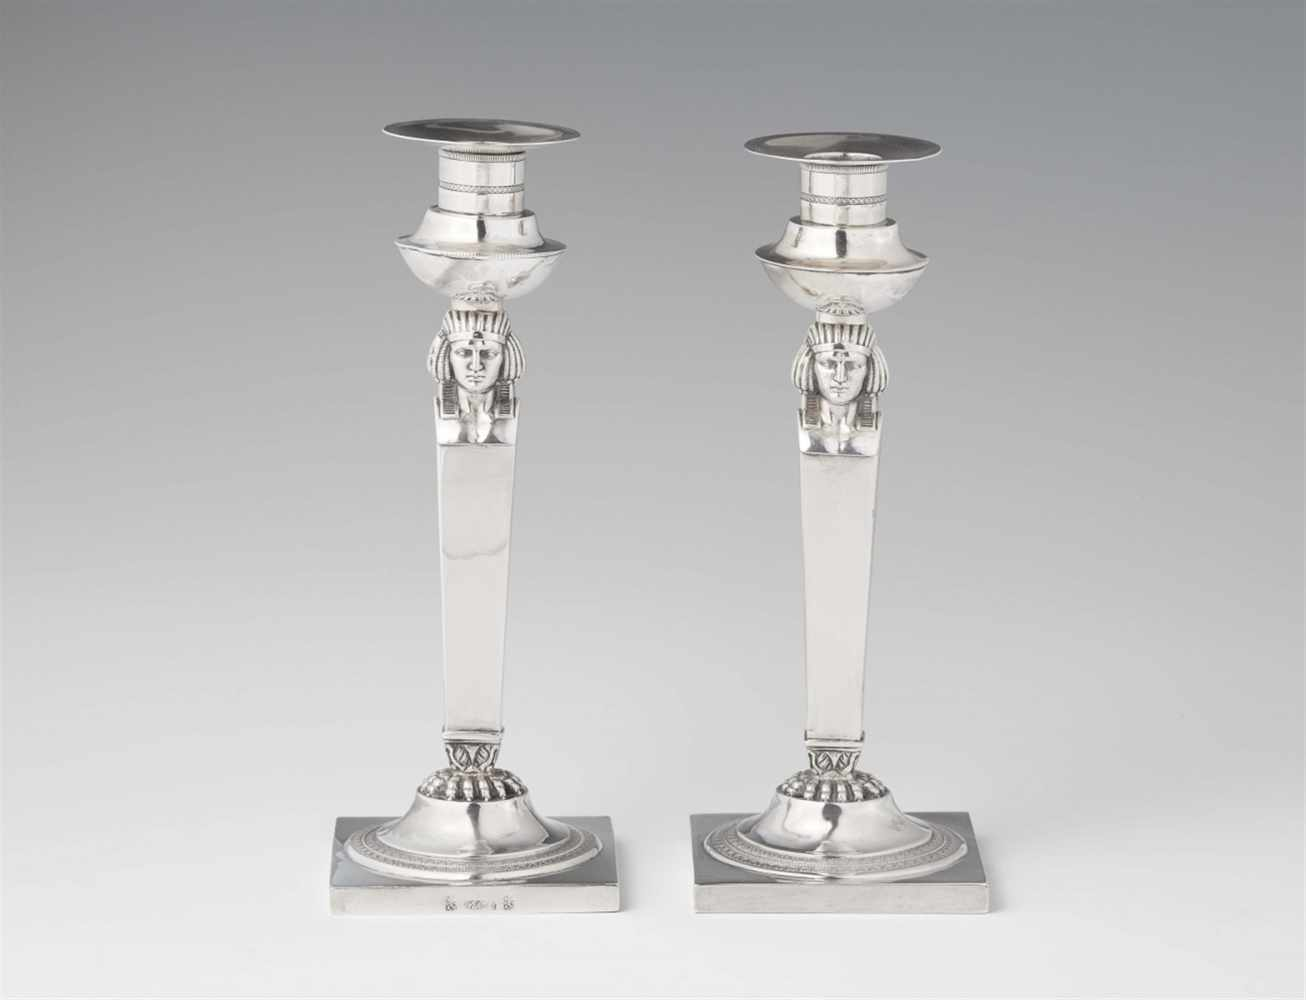 Lot 348 - A pair of Frankfurt Empire silver candlesticksSquare plinths supporting tapering shafts with